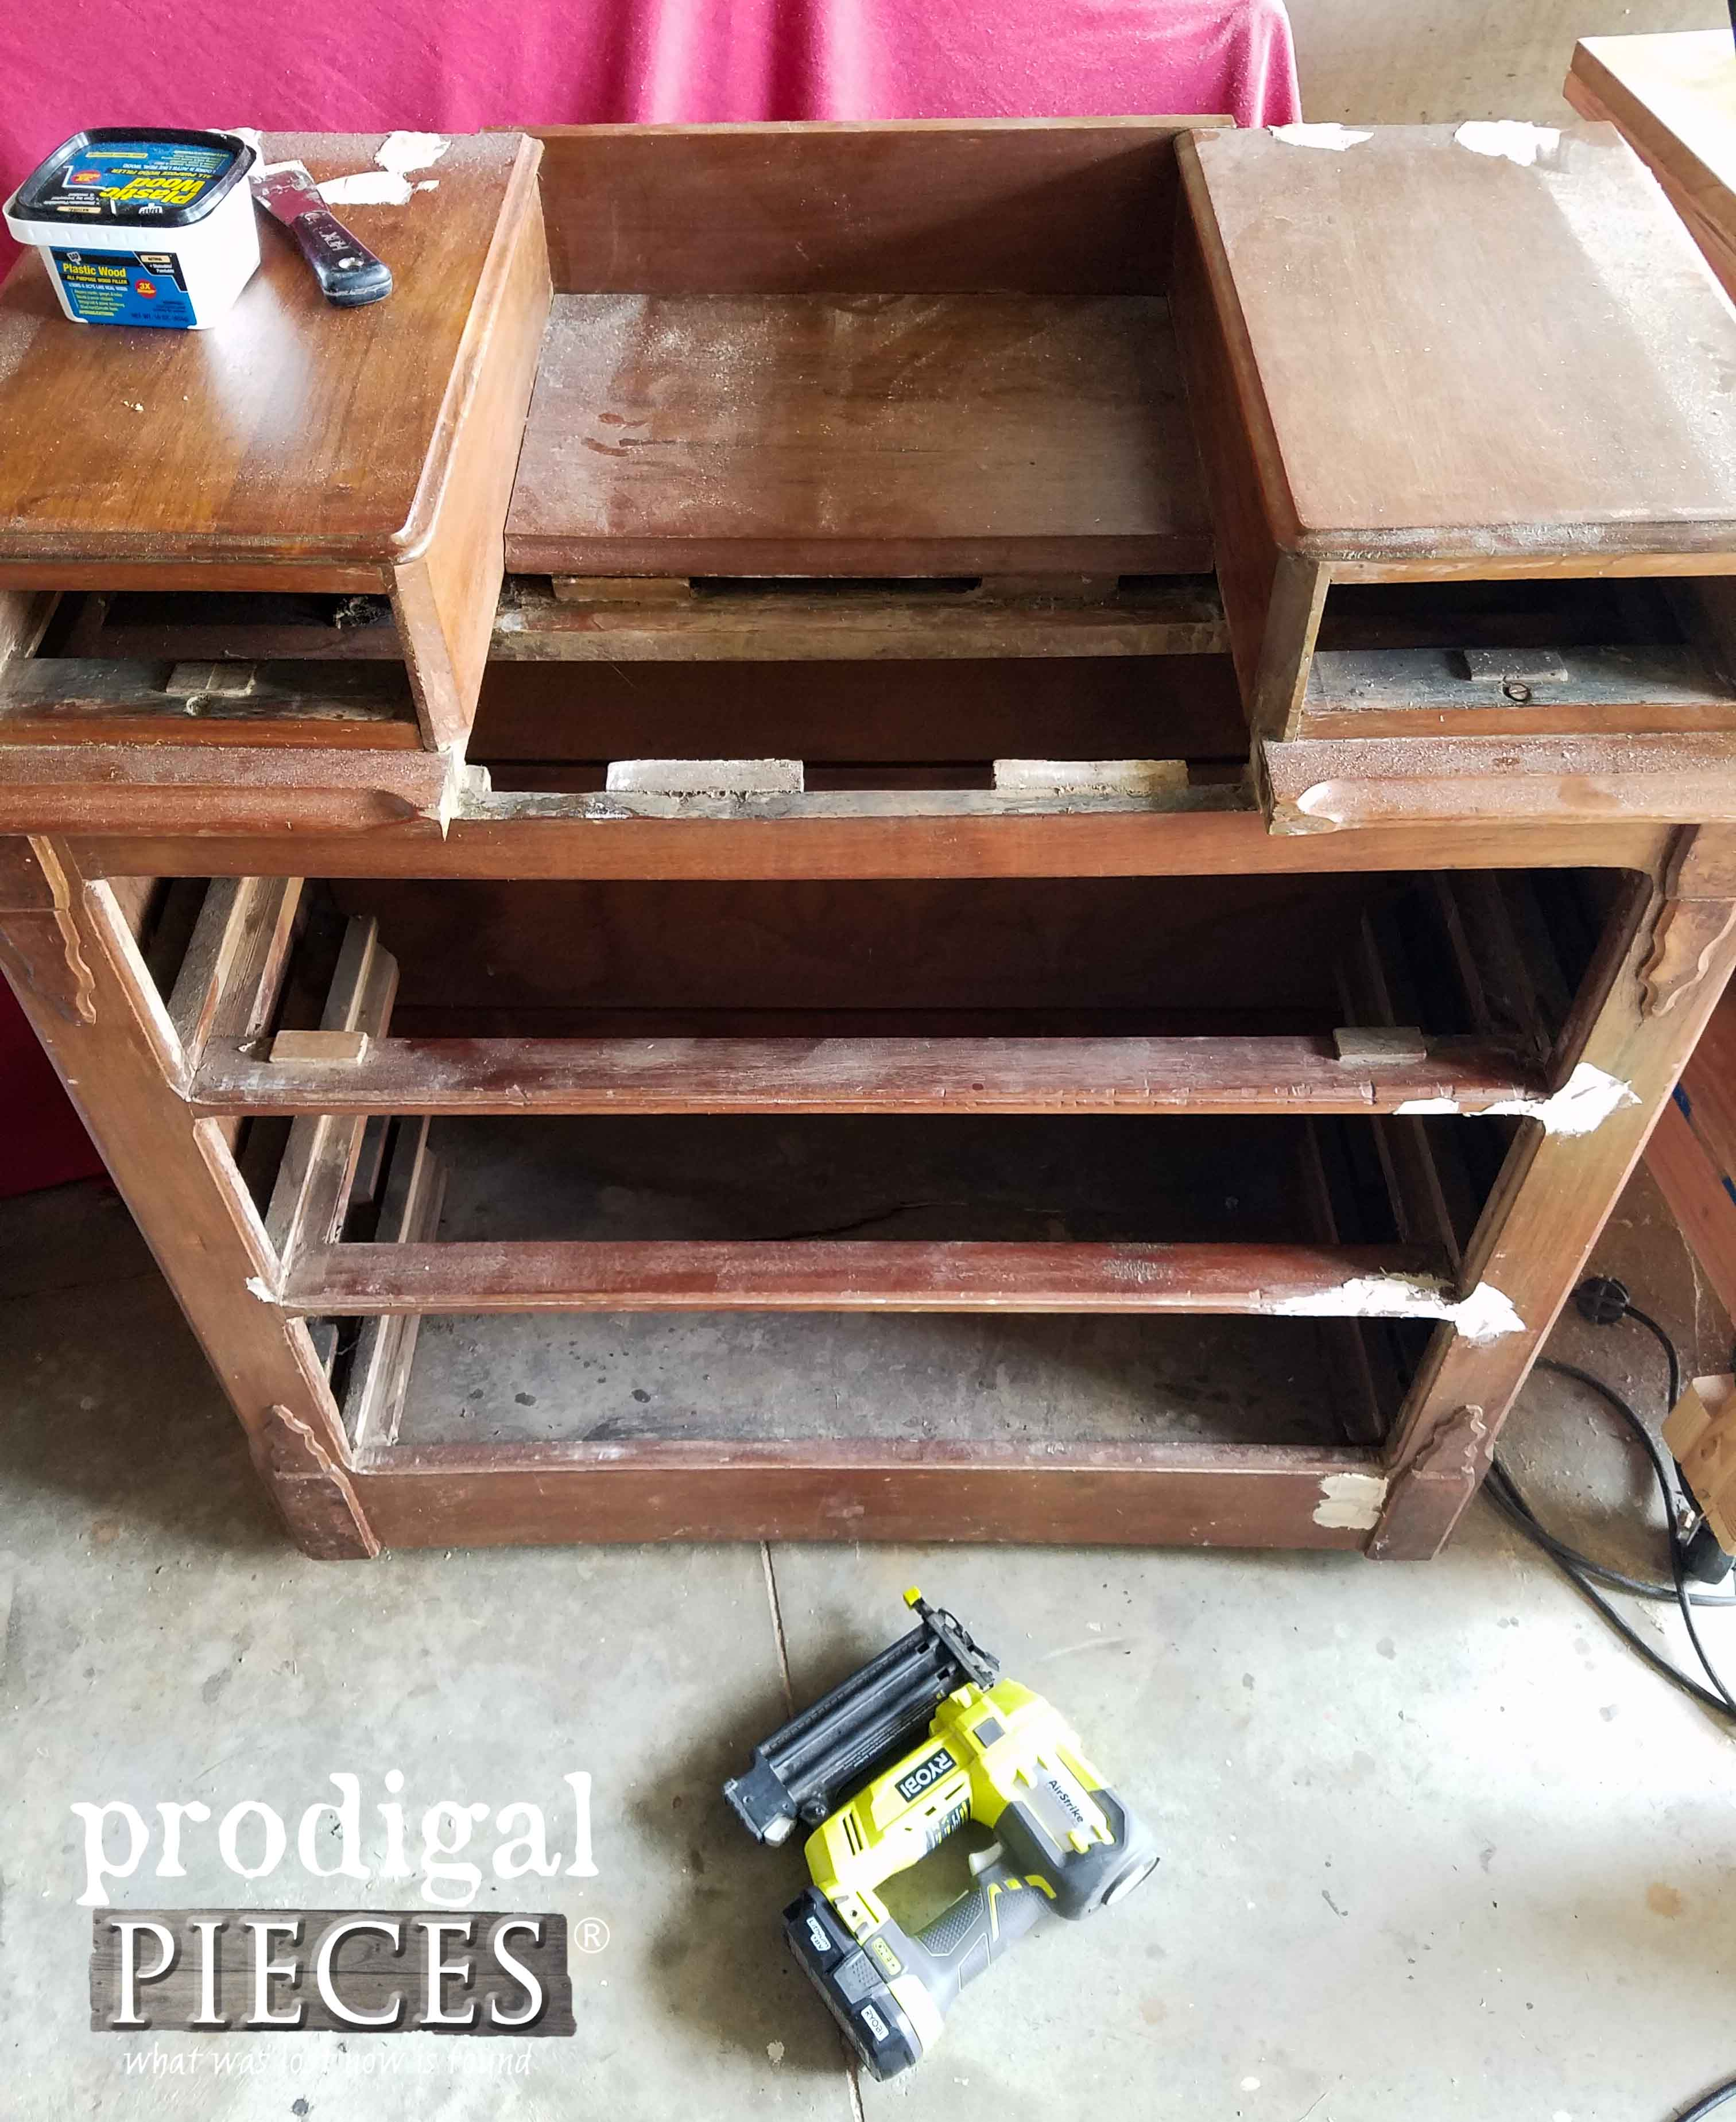 Repairing Antique Chest with AirStrike Nailer | prodigalpieces.com